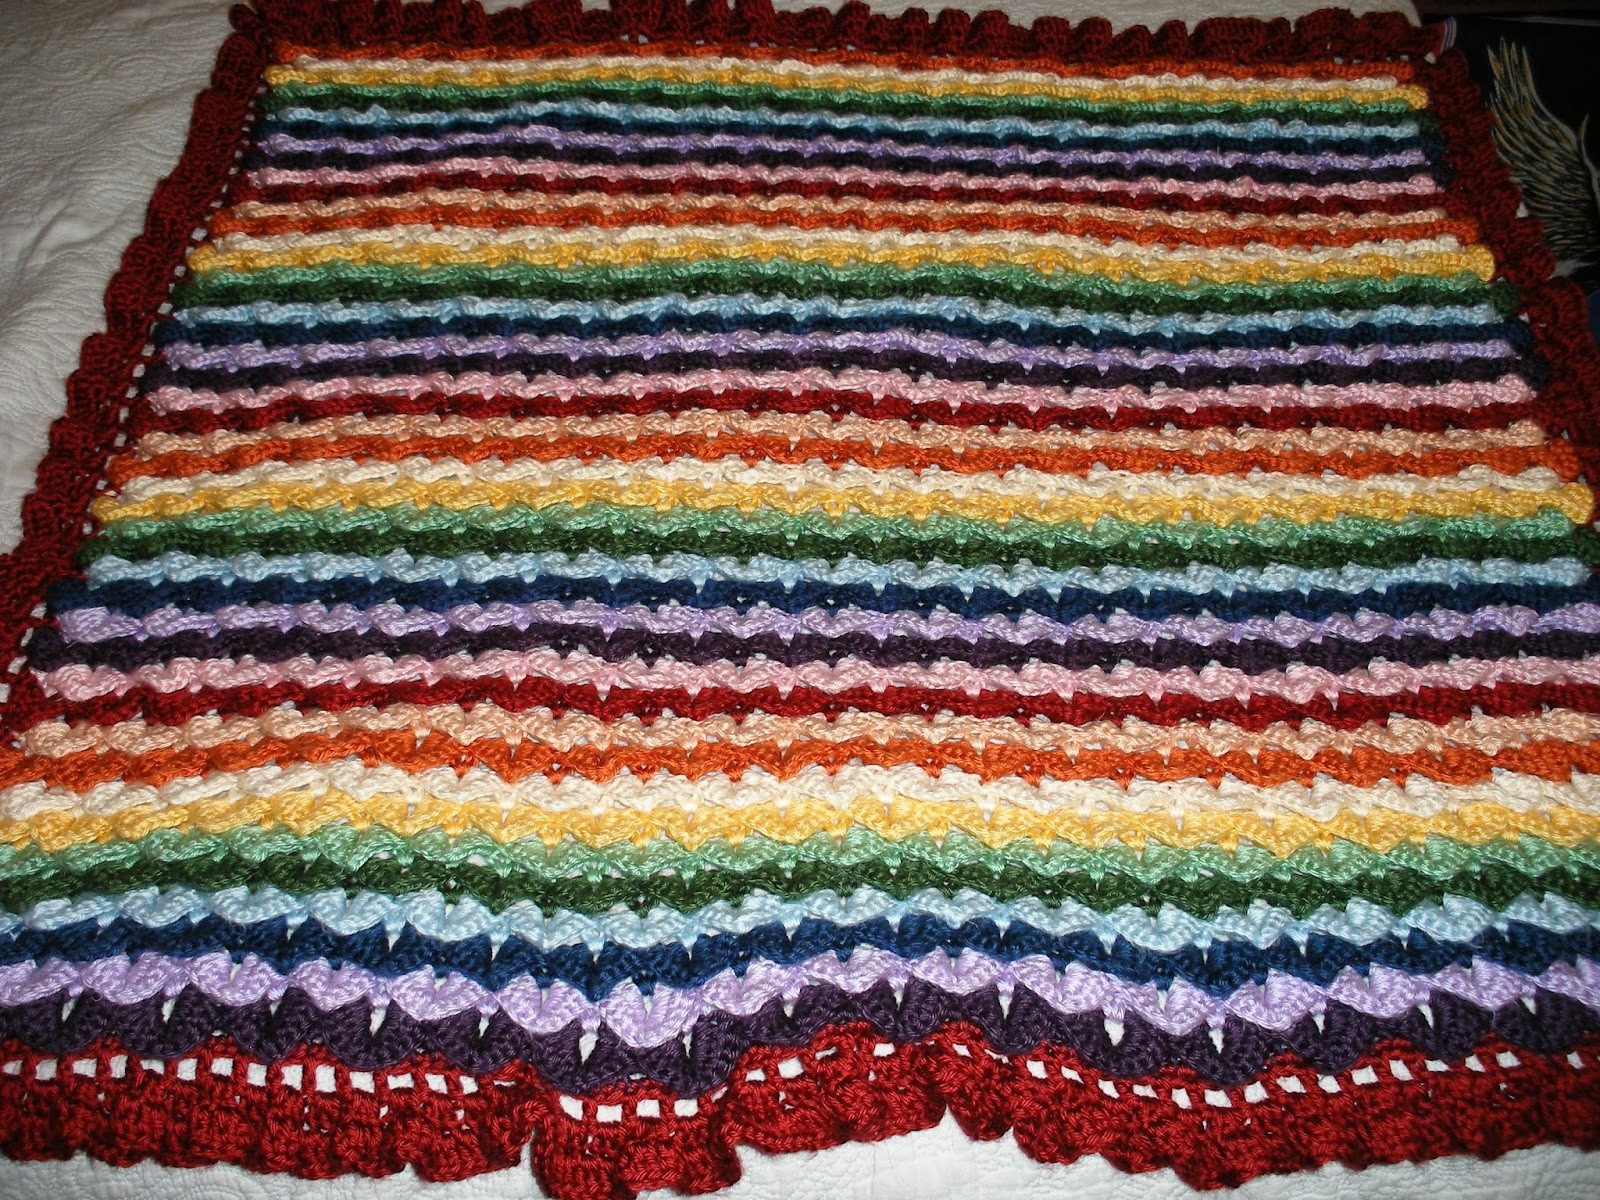 Rainbow Baby Blanket Crochet Pattern Inspirational Paper Ponies Crocheted Crocodile Stitch Rainbow Baby Blanket Of Rainbow Baby Blanket Crochet Pattern Awesome 25 Best Ideas About Rainbow Crochet Blankets On Pinterest